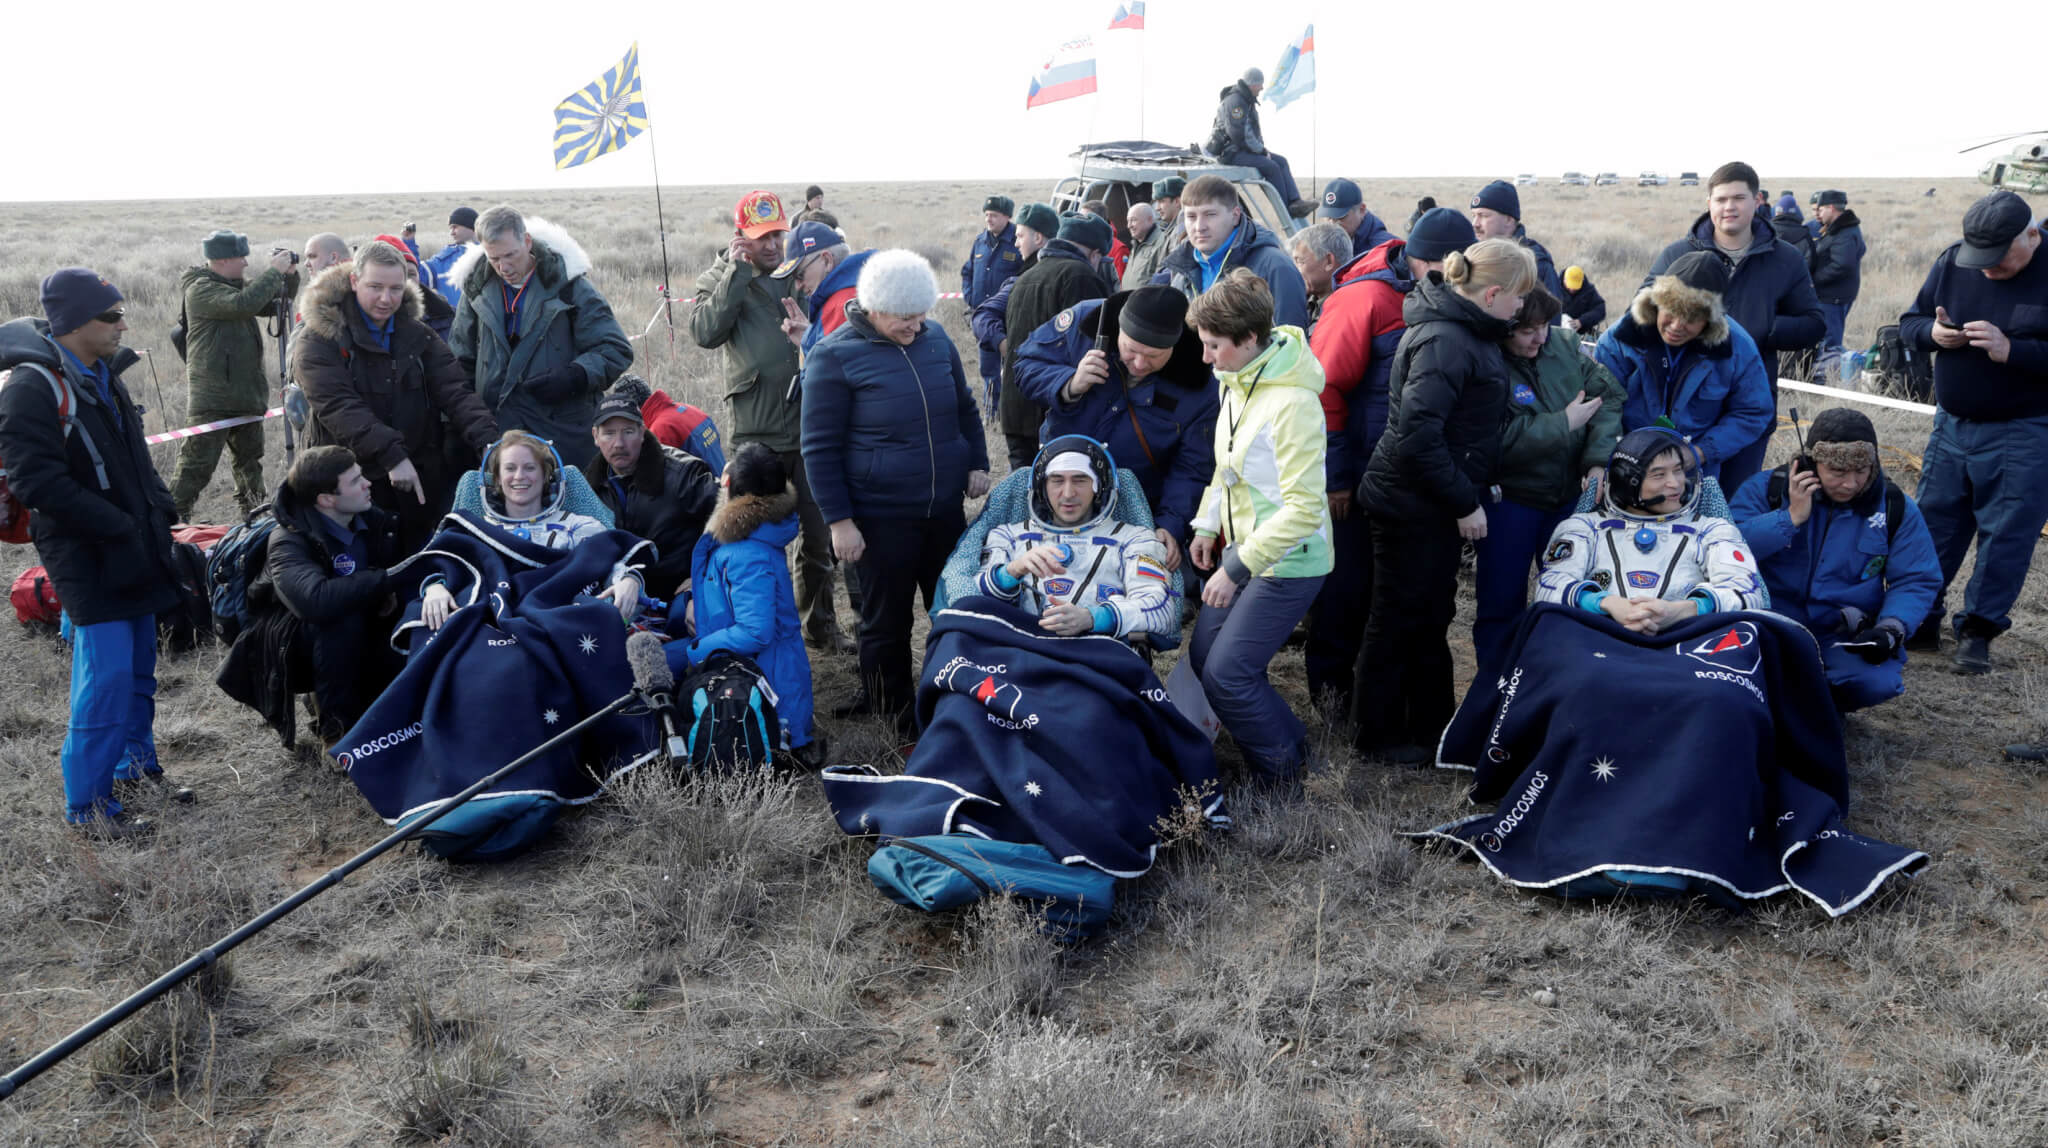 The International Space Station (ISS) crew members Kate Rubins of the U.S., Anatoly Ivanishin of Russia and Takuya Onishi of Japan, surrounded by ground personnel, rest shortly after landing of the Russian Soyuz MS space capsule near the town of Dzhezkazgan (Zhezkazgan), Kazakhstan, October 30, 2016. REUTERS/Dmitri Lovetsky/Pool